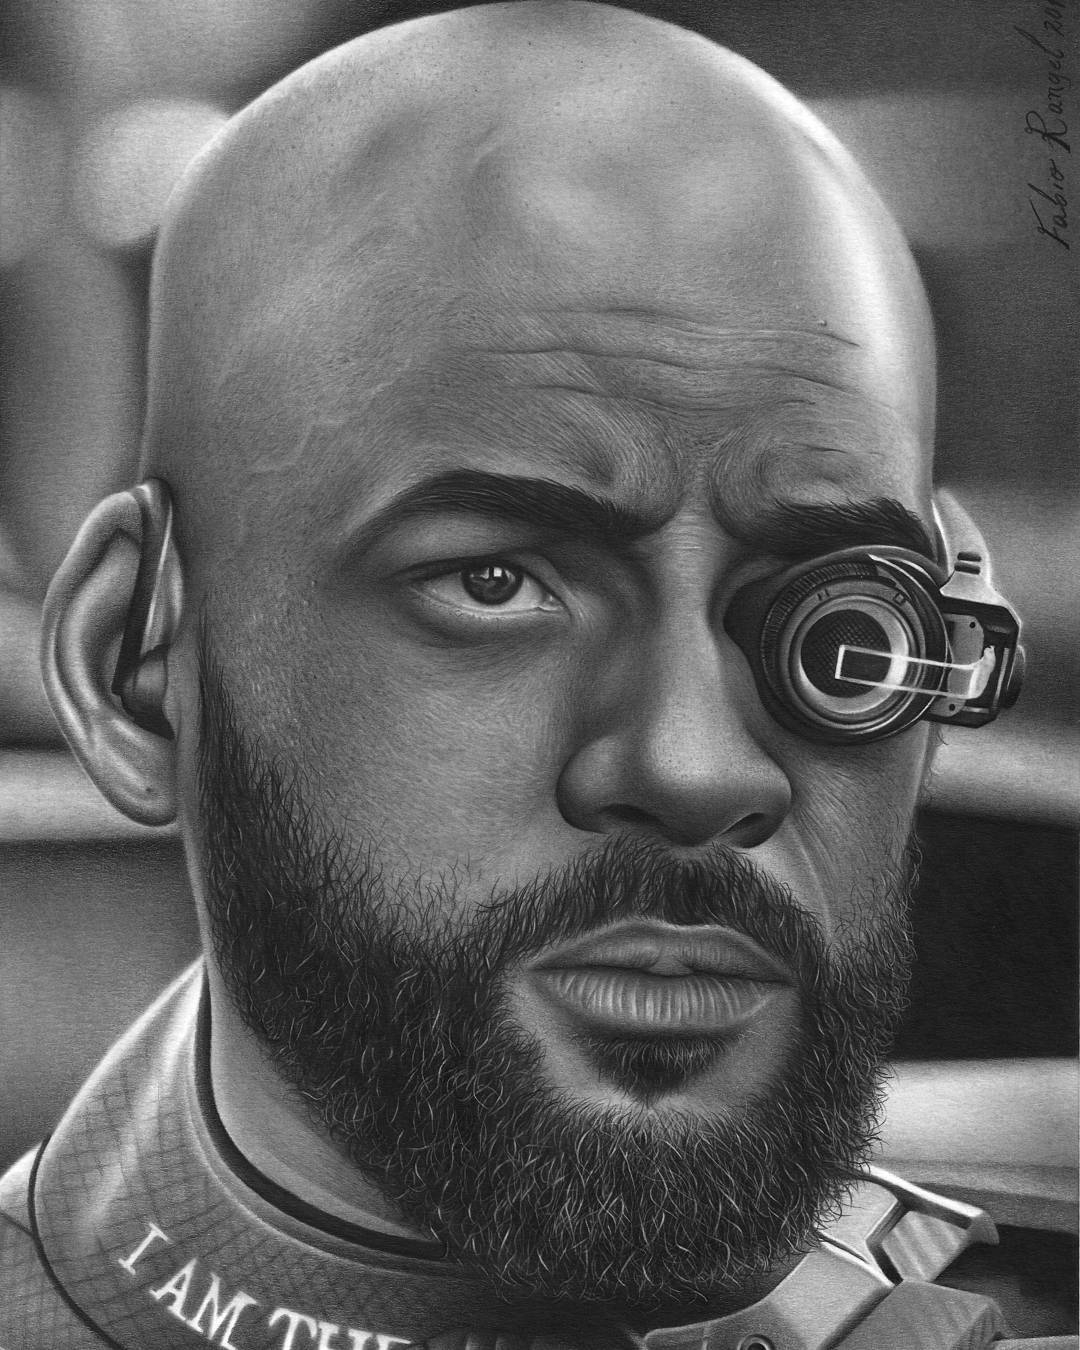 10-Will-Smith-Deadshot-Suicide-Squad-Fabio-Rangel-Drawings-of-Protagonists-from-TV-and-Movies-www-designstack-co